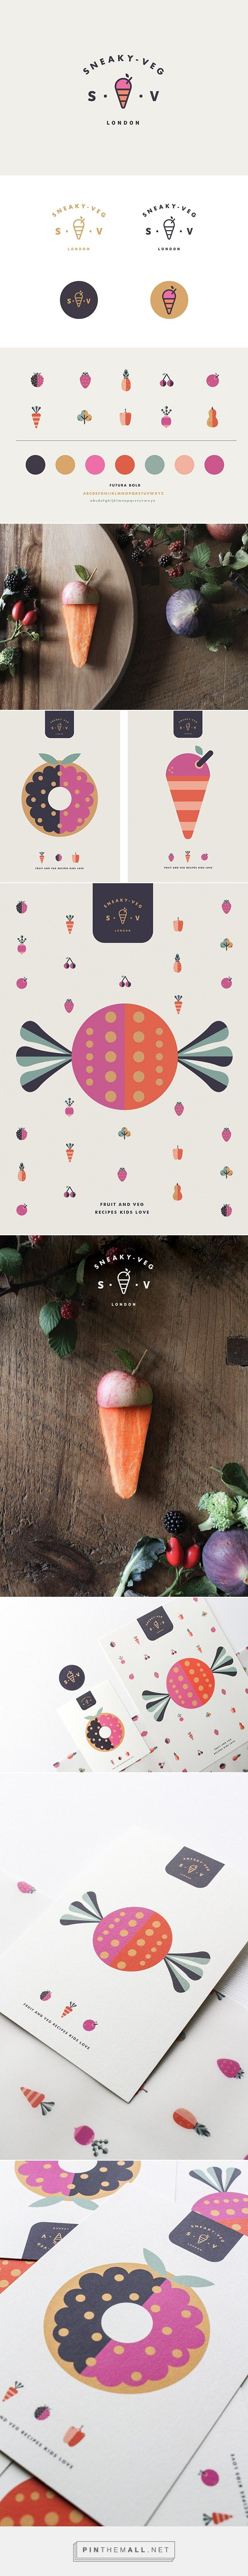 clothing free shipping Sneaky Veg brand identity and  stationery design on Behance